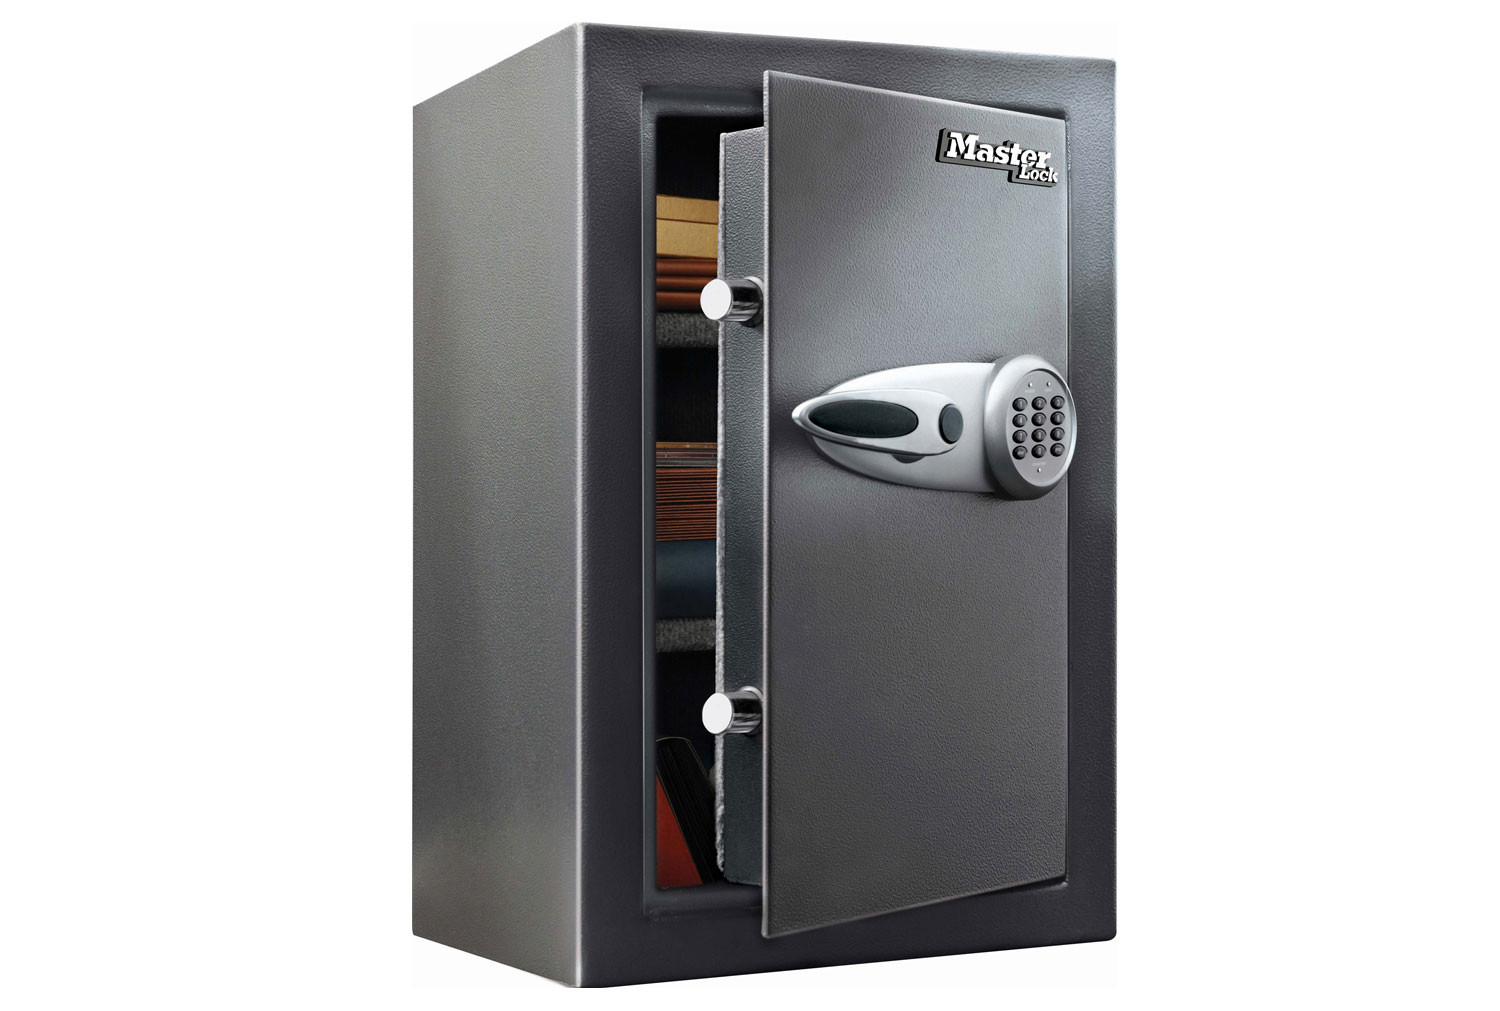 Master Lock T6-331ML Large Security Safe With Electronic Lock (62ltrs)